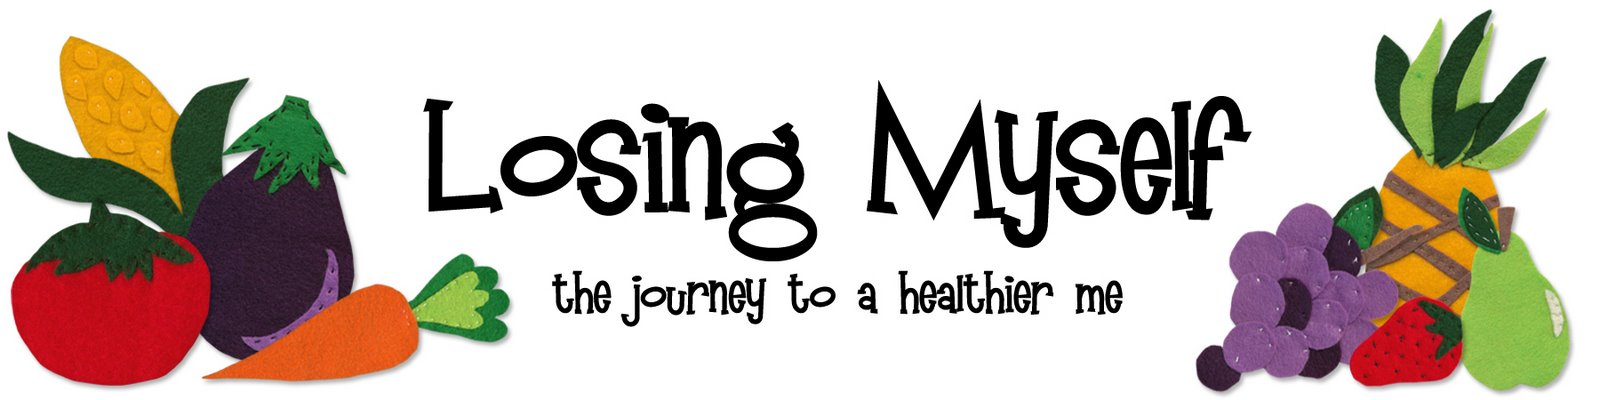 Losing Myself - The Journey to a Healthier Me